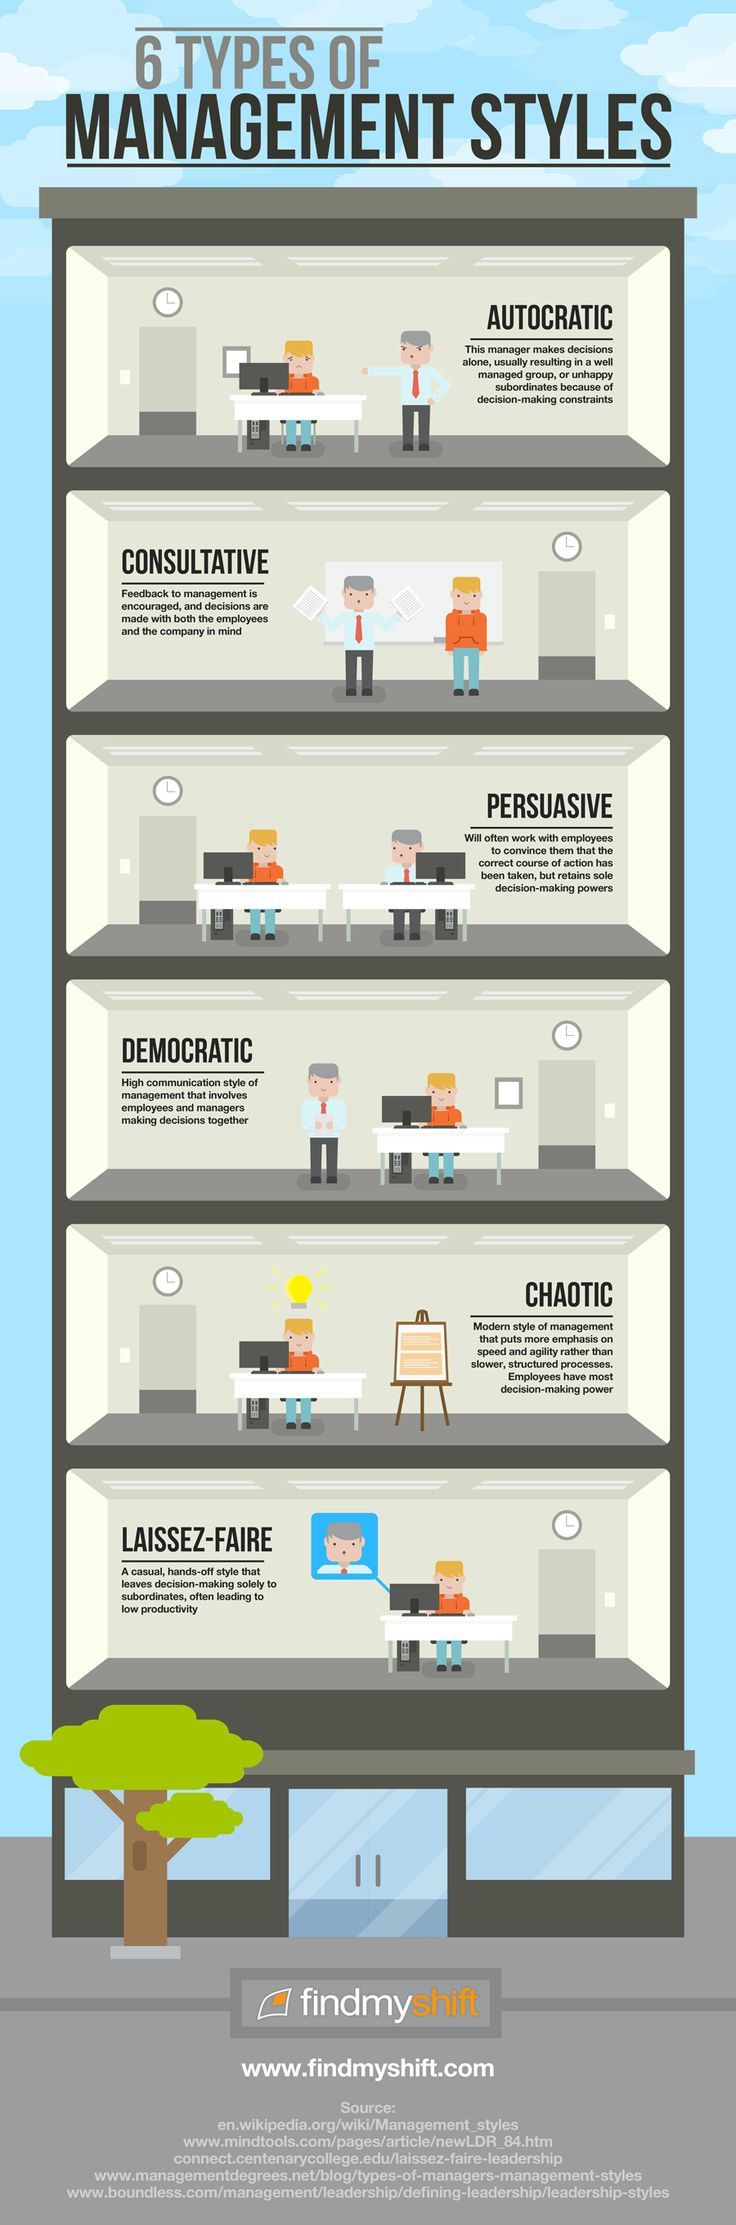 best ideas about management styles business 6 types of management styles infographic